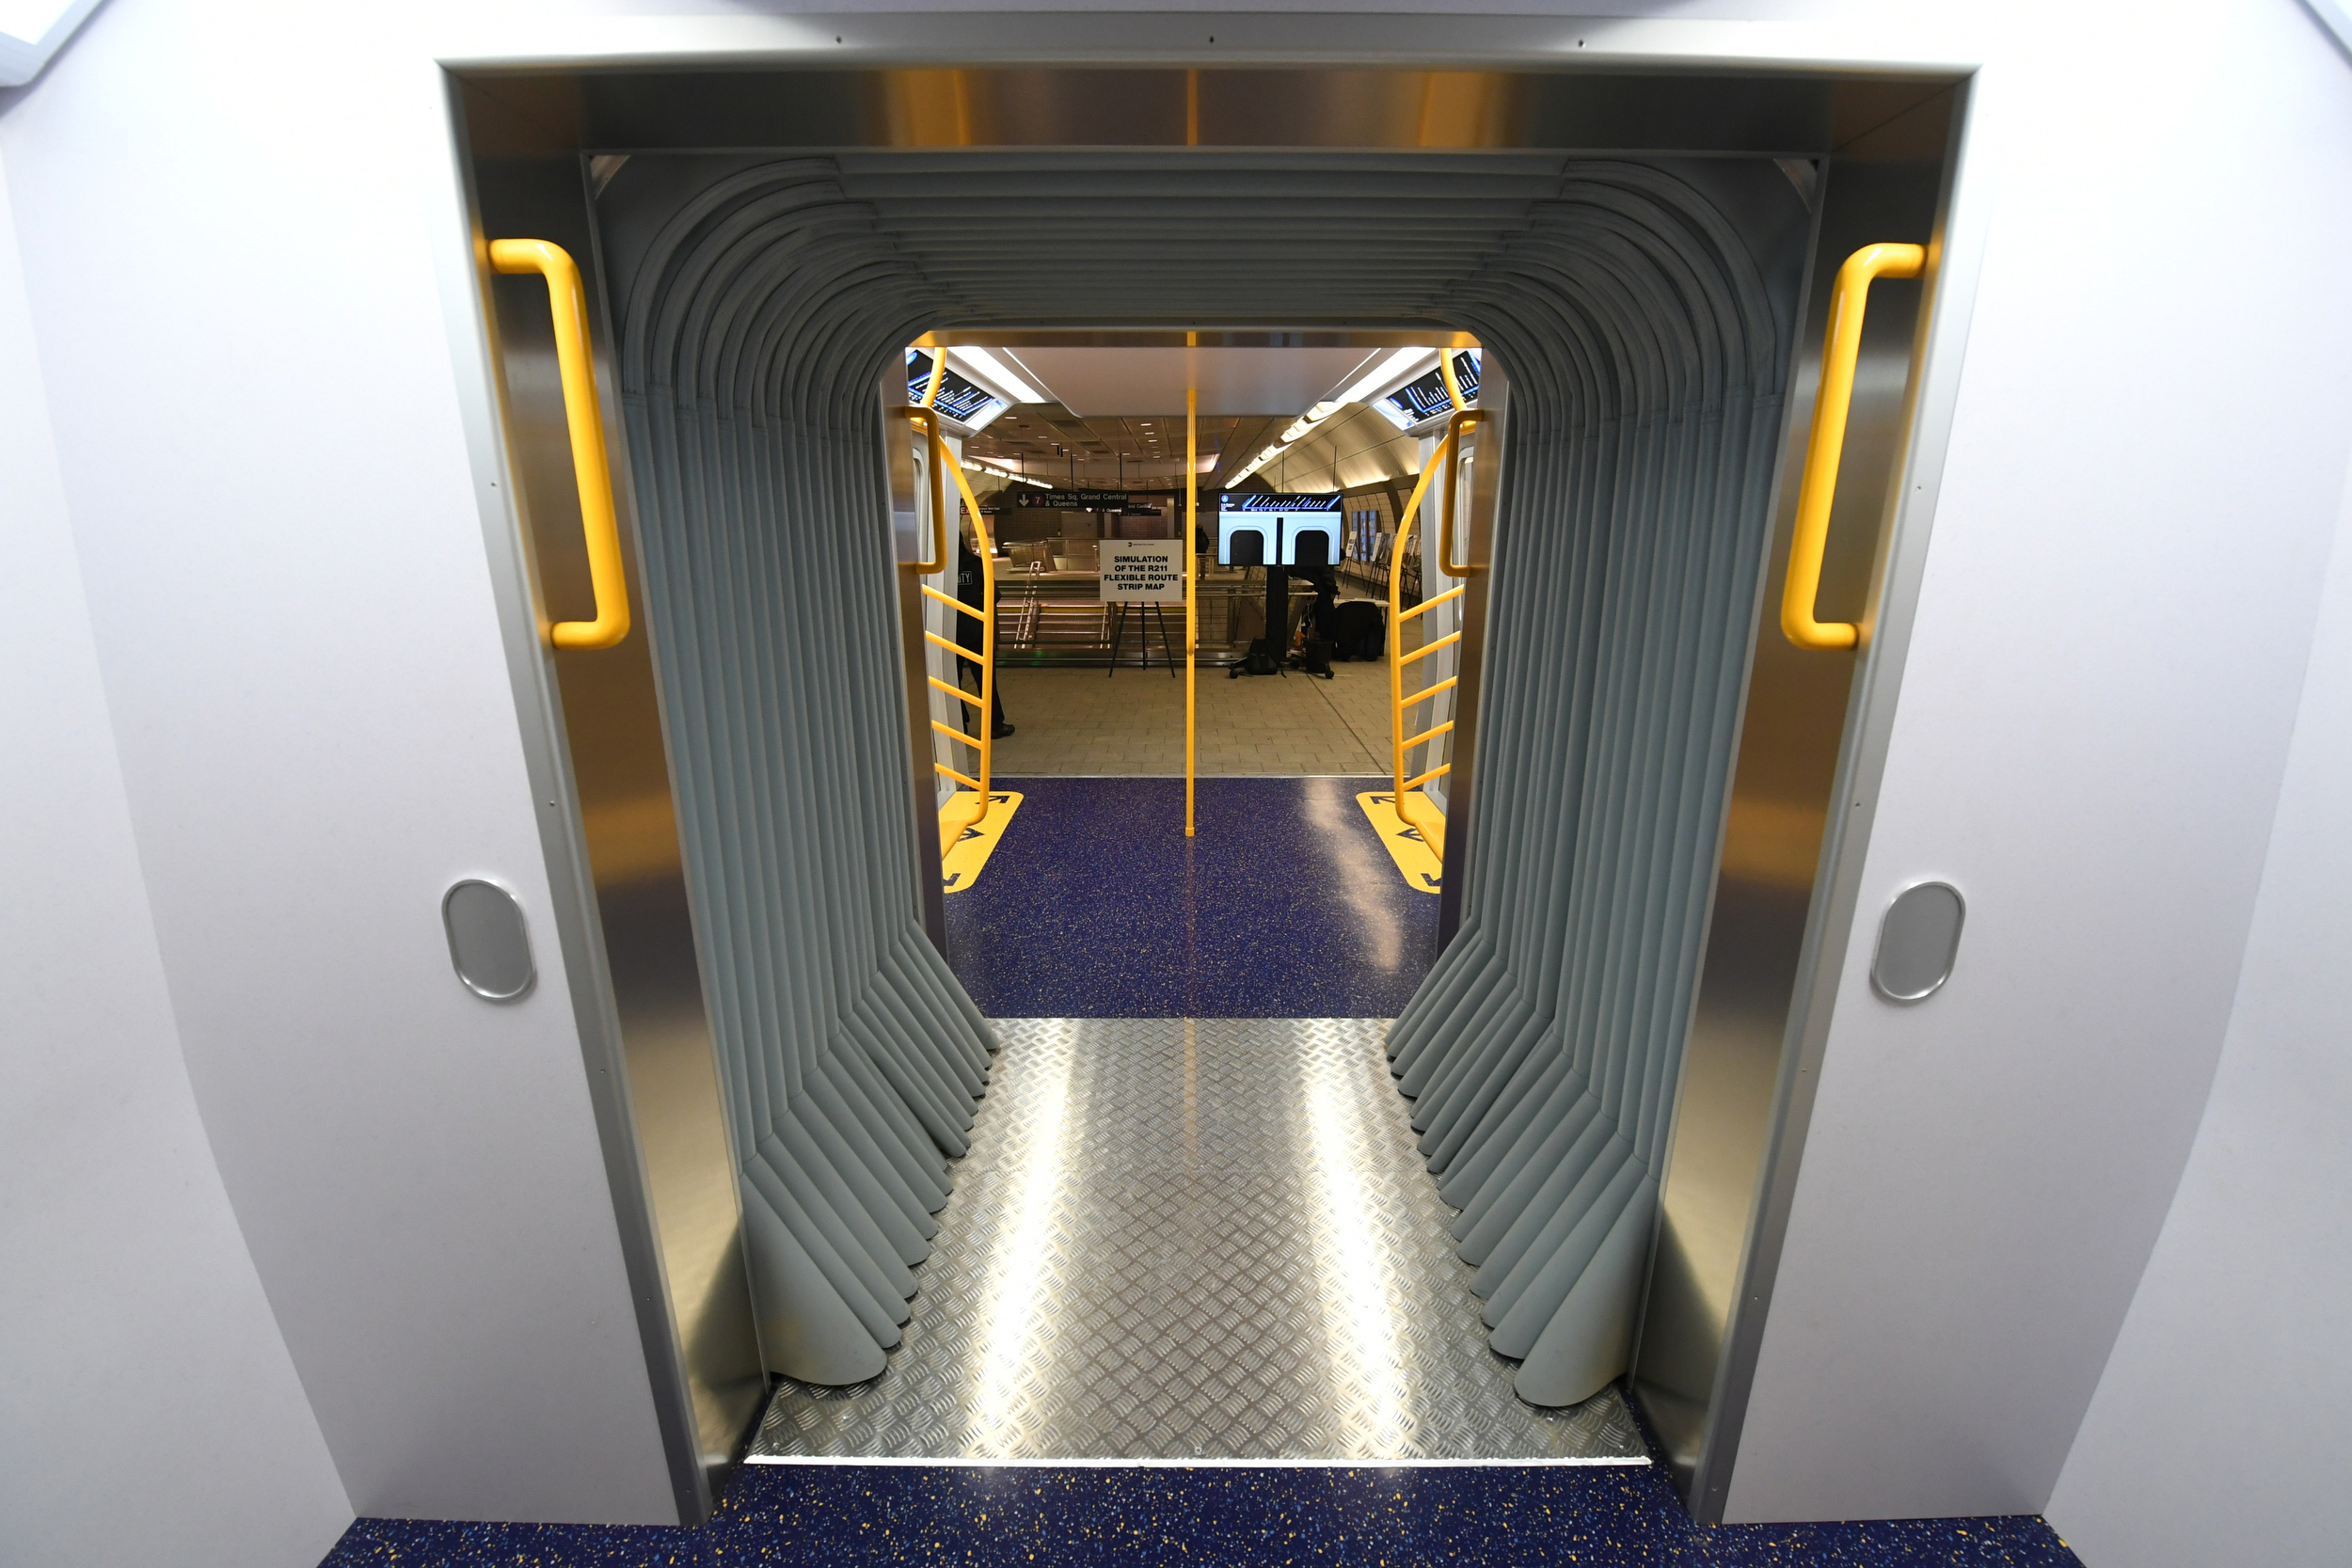 The MTA unveiled an example of a new open gangway subway car on Nov. 30, 2017.